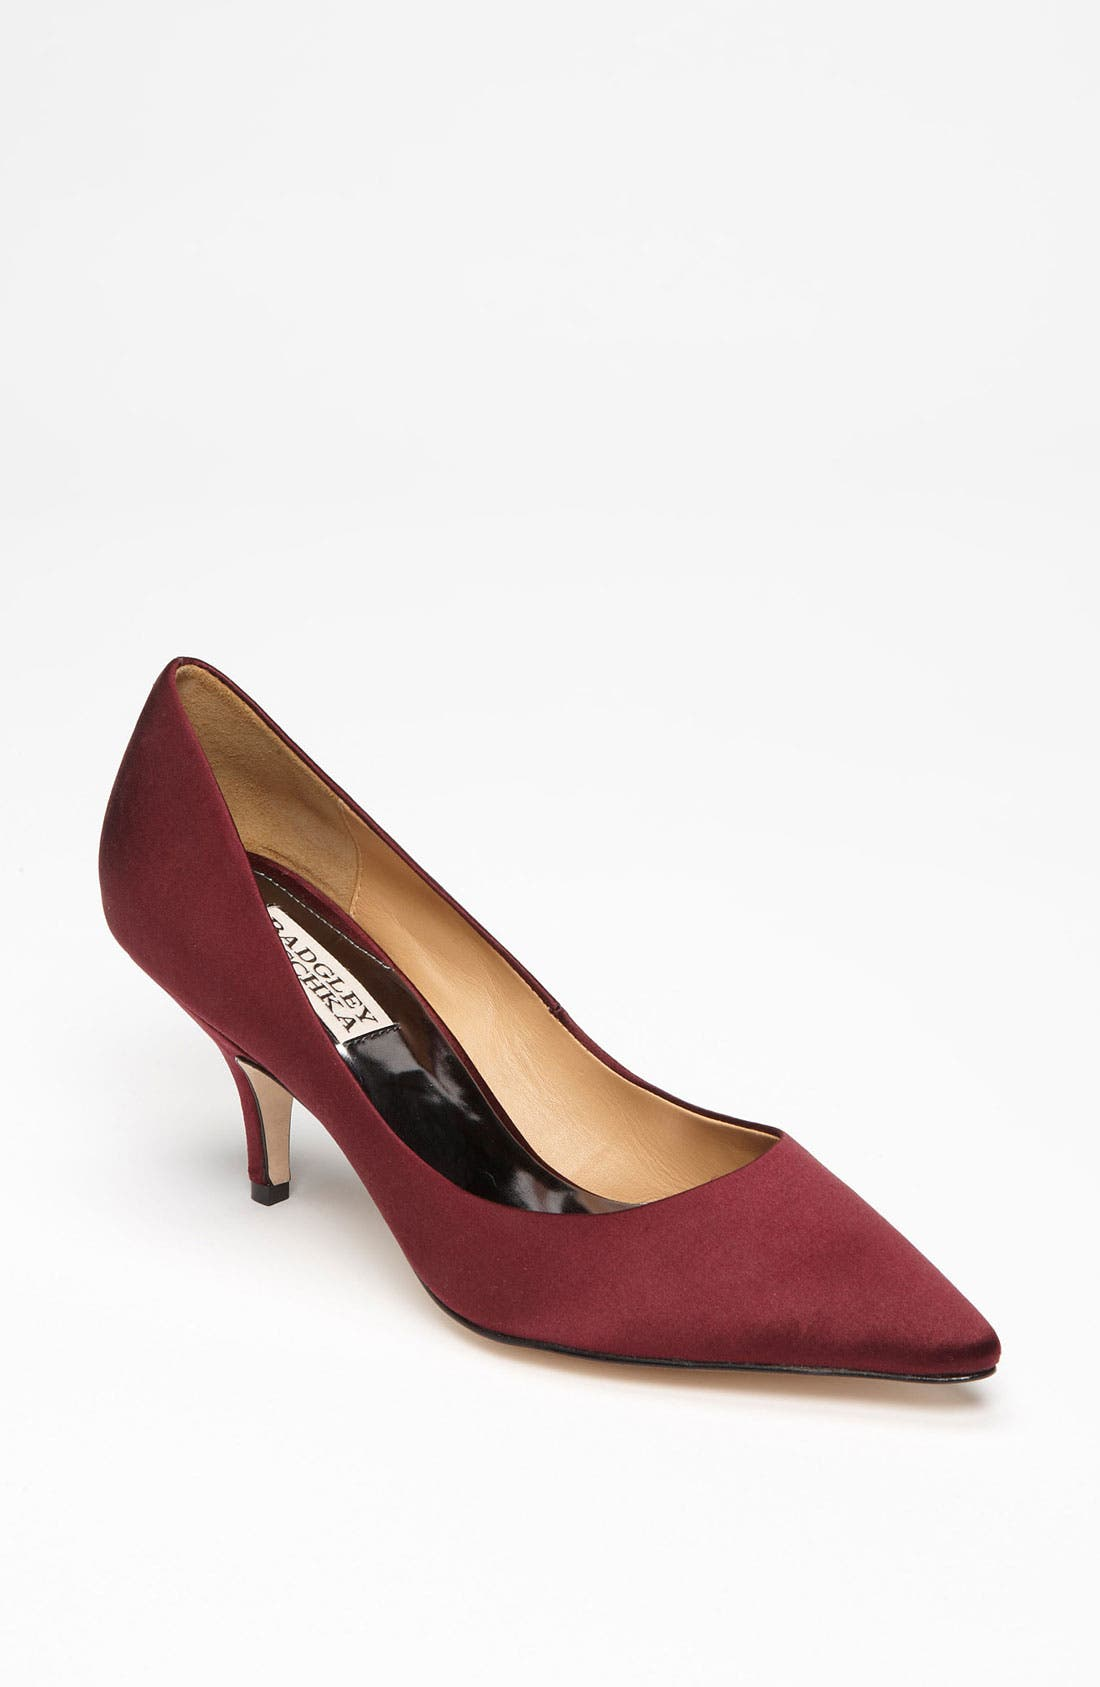 Alternate Image 1 Selected - Badgley Mischka 'Monika II' Pump